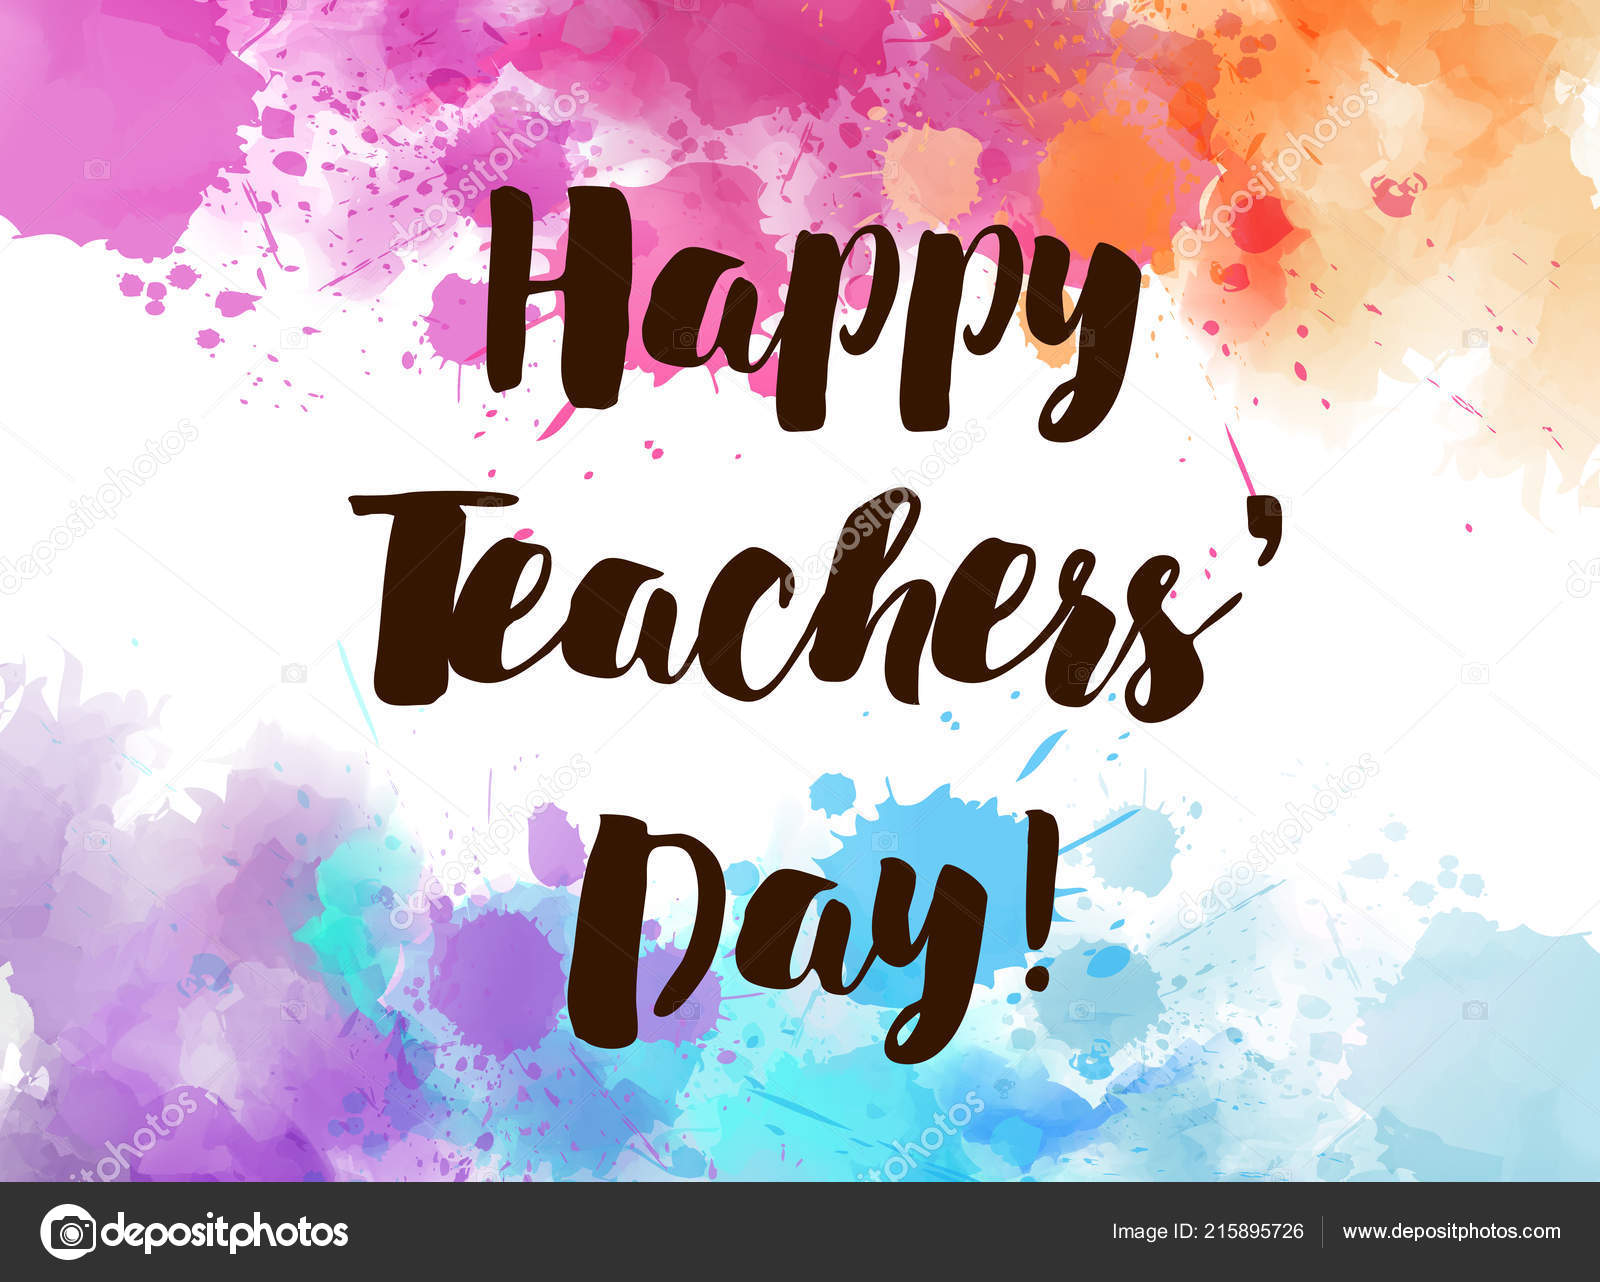 Happy Teachers Day Watercolor Splashes Holiday Background